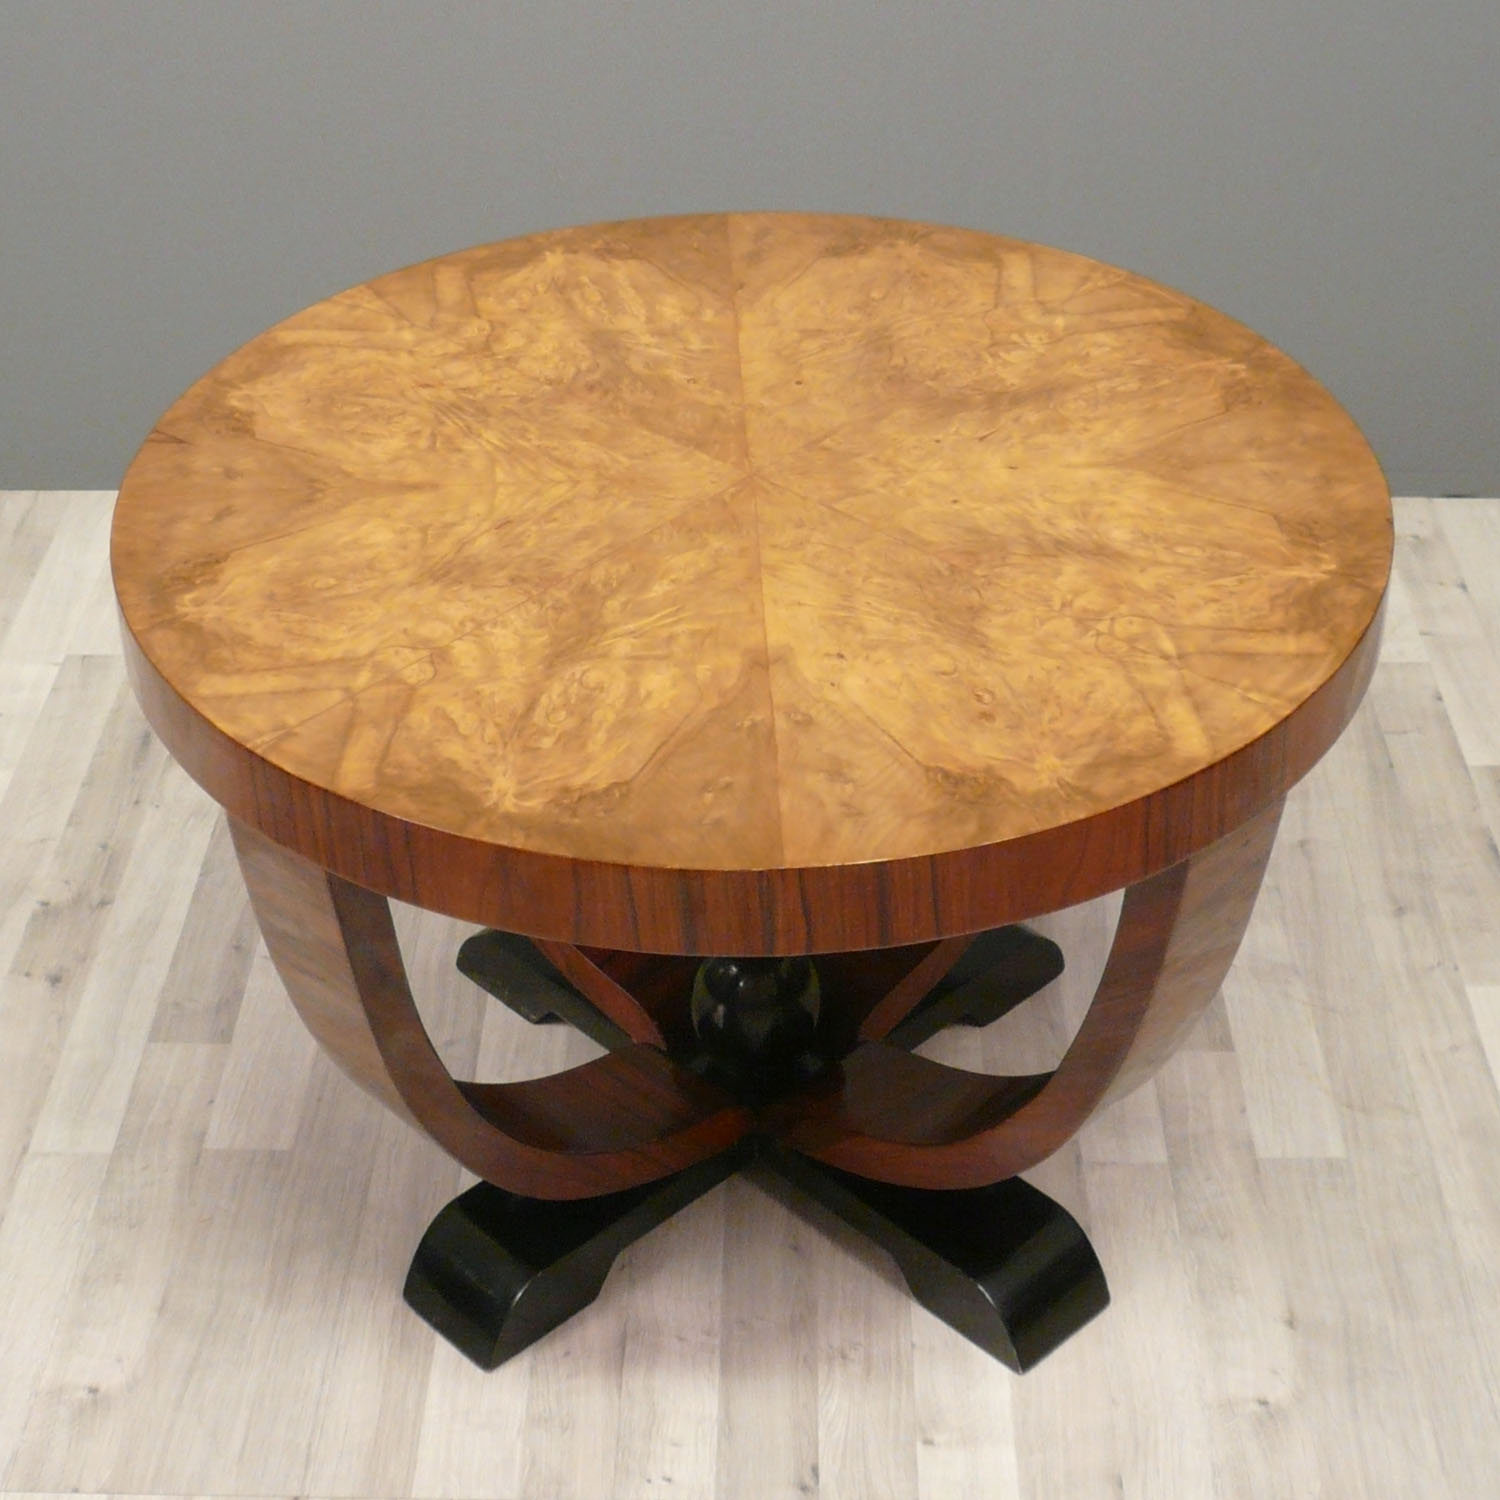 Meuble Art Deco Table Art Déco Table Basse Art Déco Meubles Art Déco